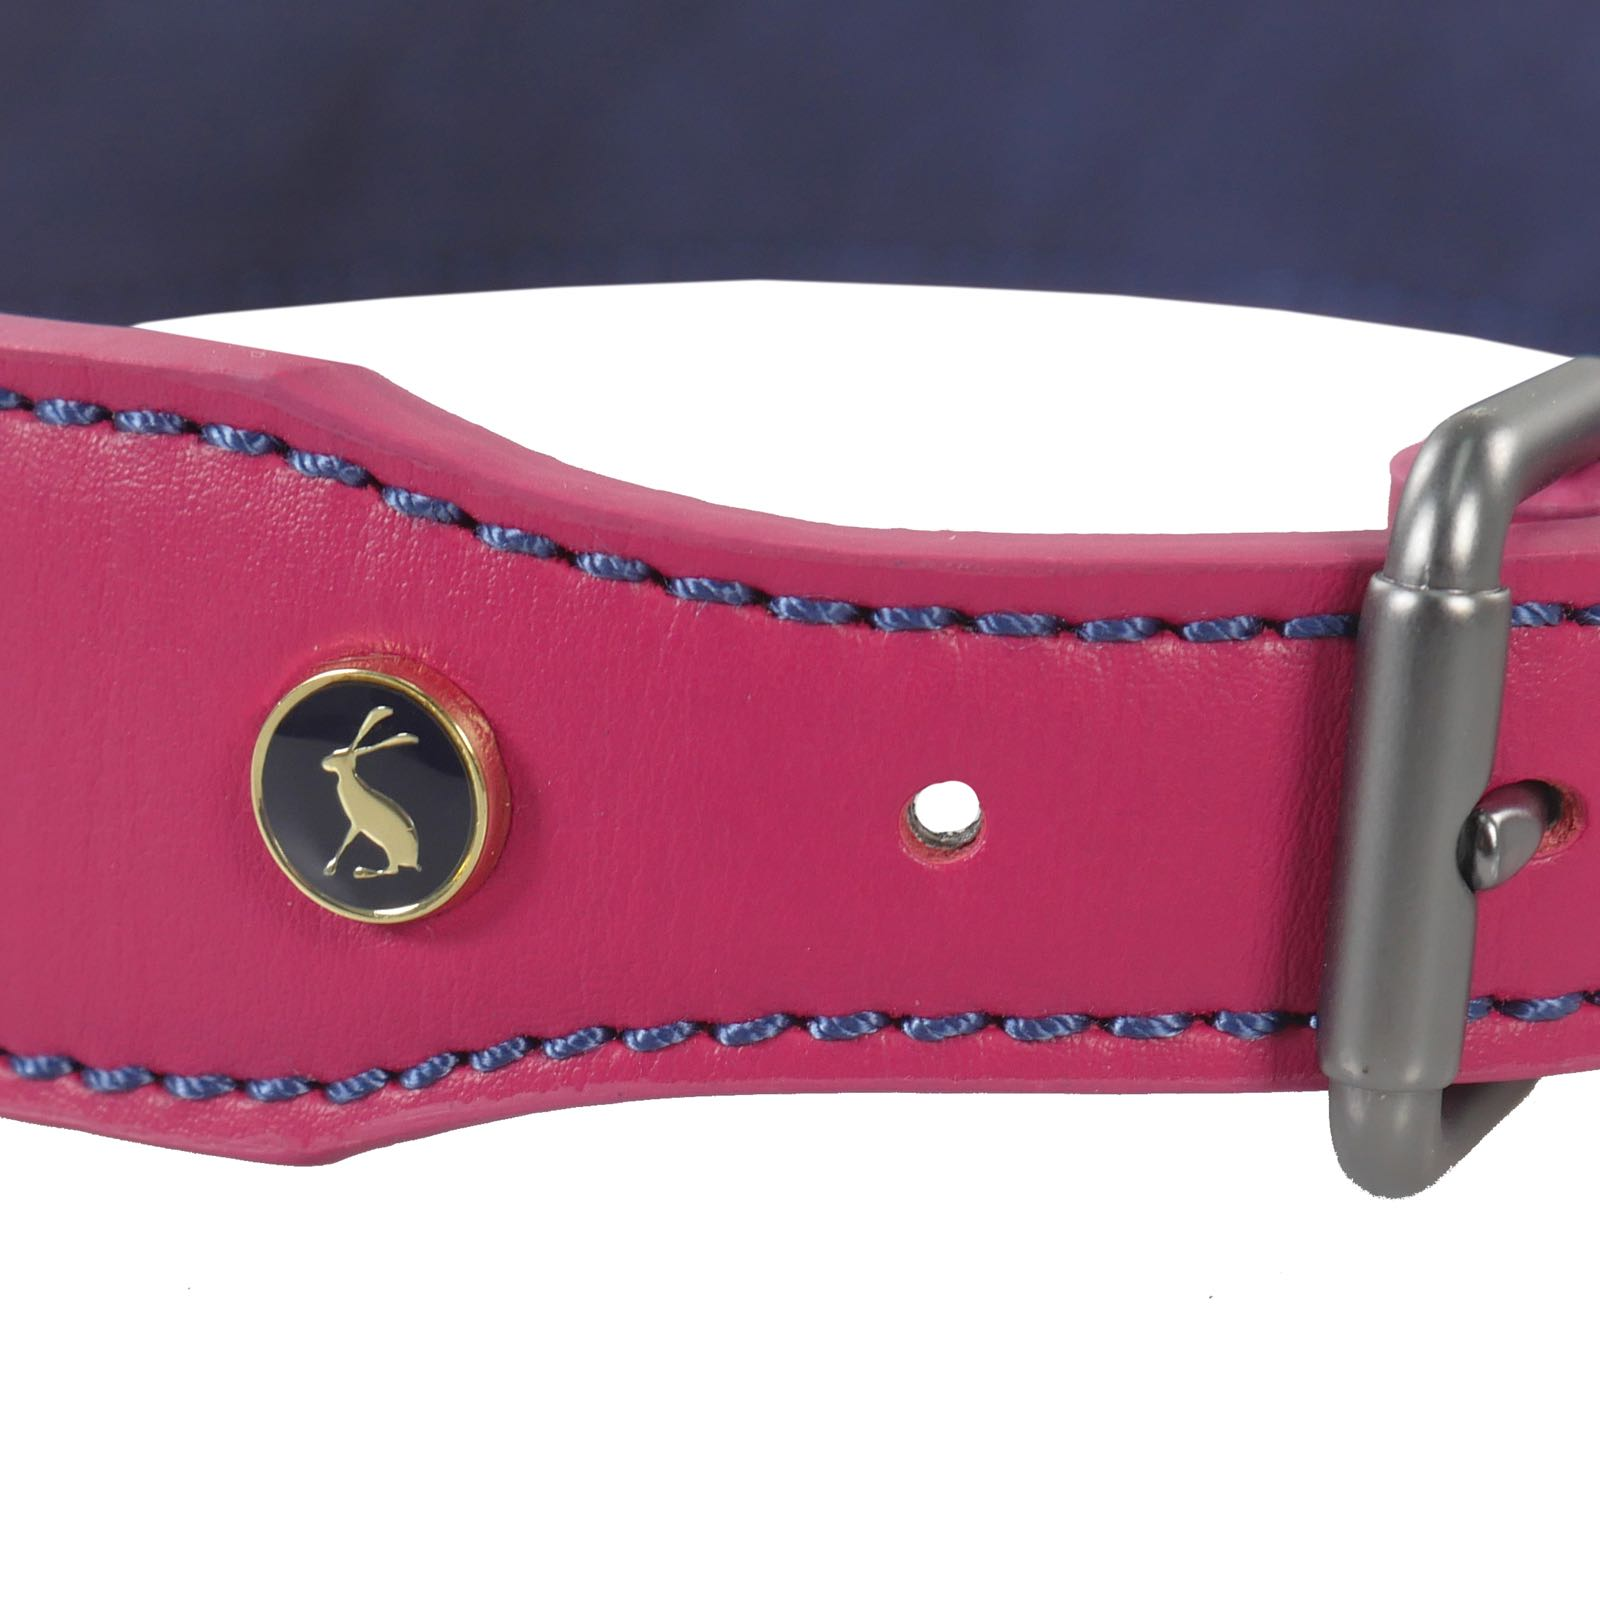 Joules Pink Leather Dog Collar XLarge 56cm-66cm Golden Retrievers/Rottweiler/Setter